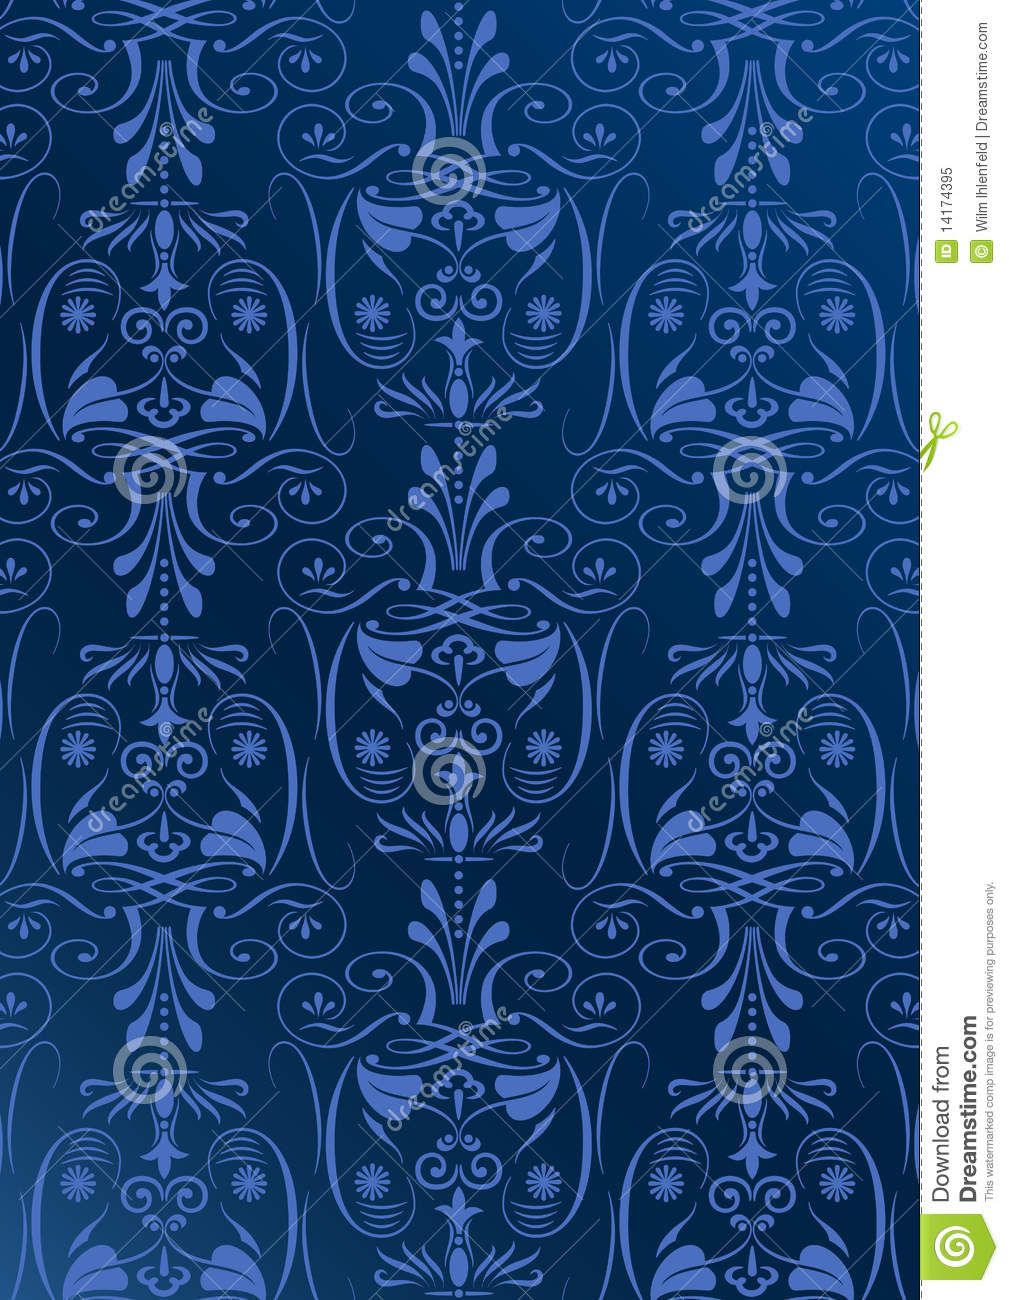 Blue Wallpaper With Arabesques Royalty Free Stock Photo ...